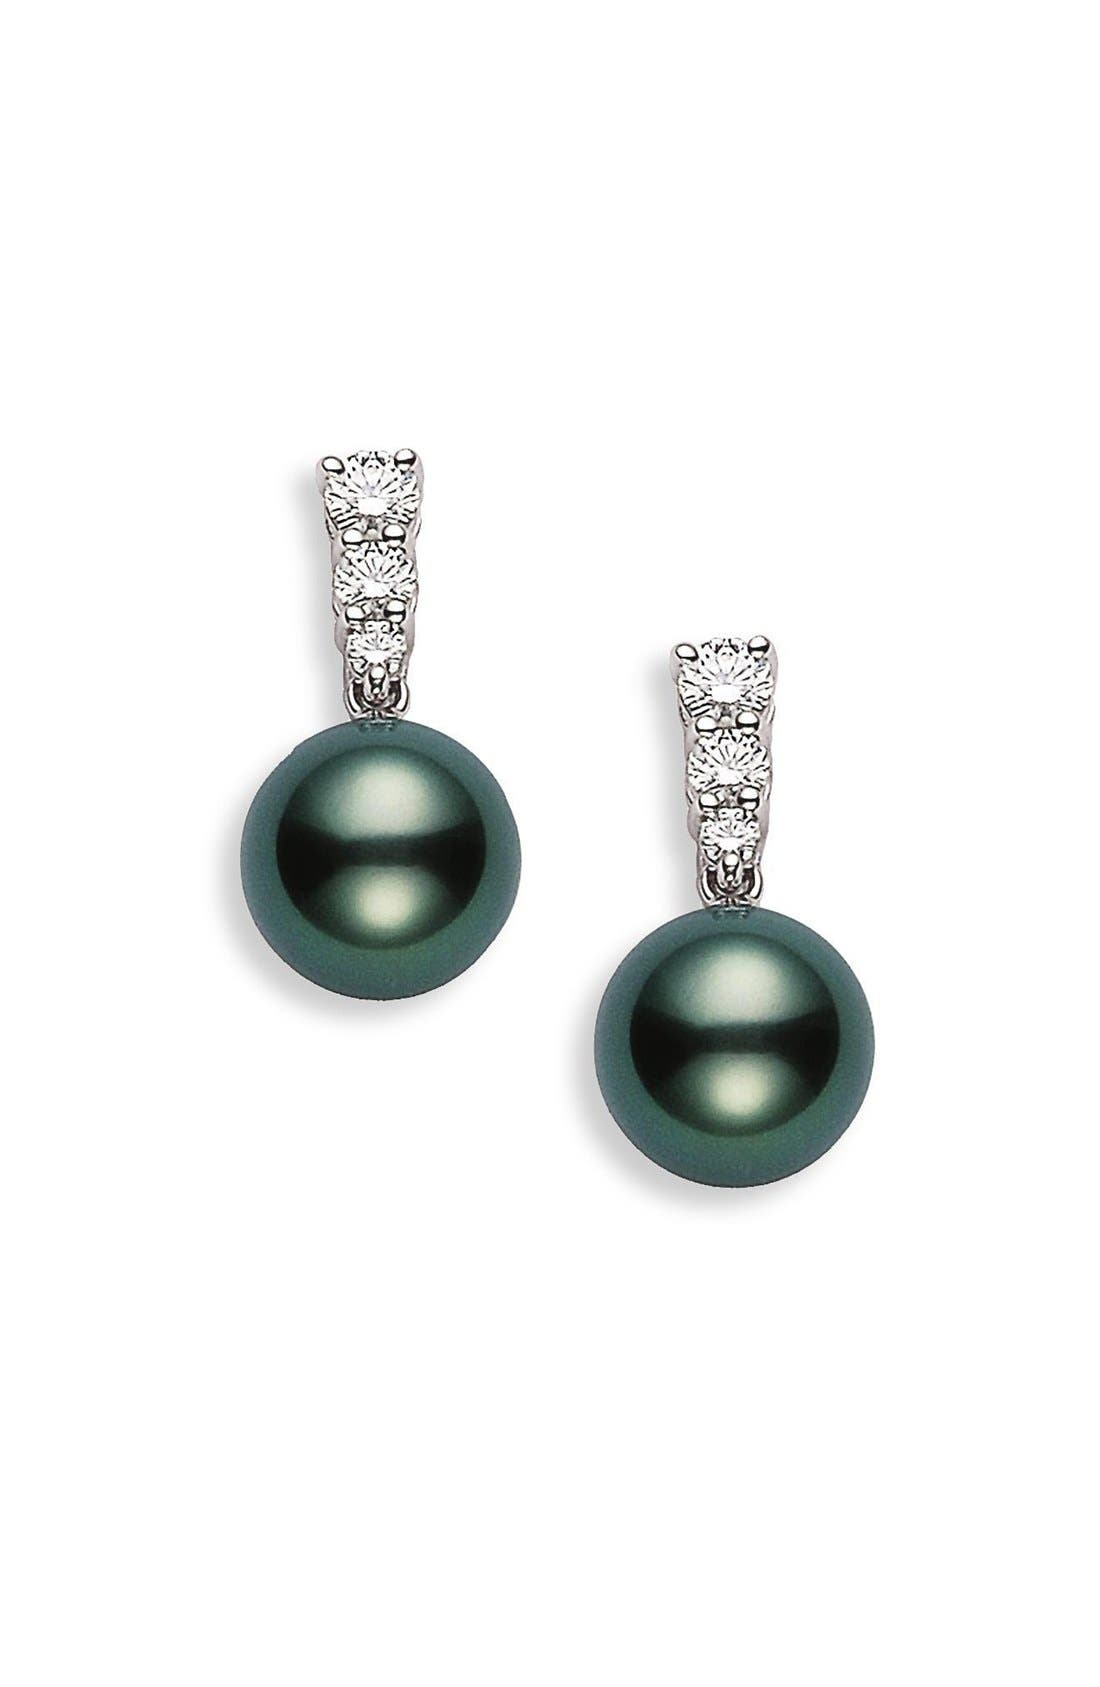 'Morning Dew' Black South Sea Cultured Pearl & Diamond Earrings,                             Alternate thumbnail 2, color,                             WHITE GOLD